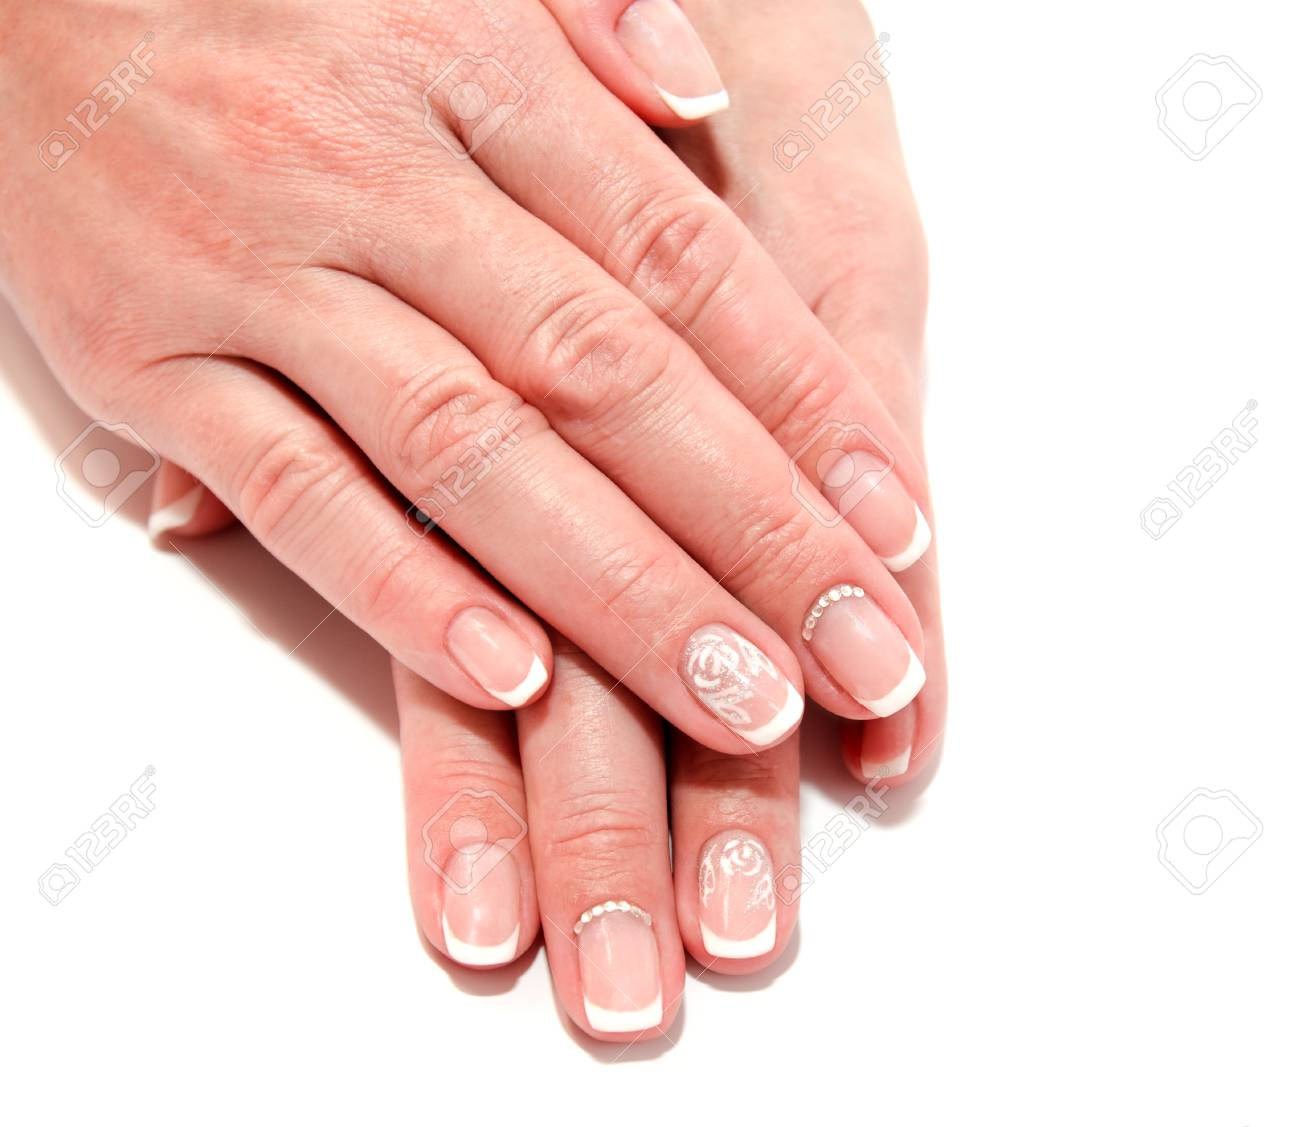 Woman S Nails With Beautiful French Manicure Fashion Design With Stock Photo Picture And Royalty Free Image Image 108743985